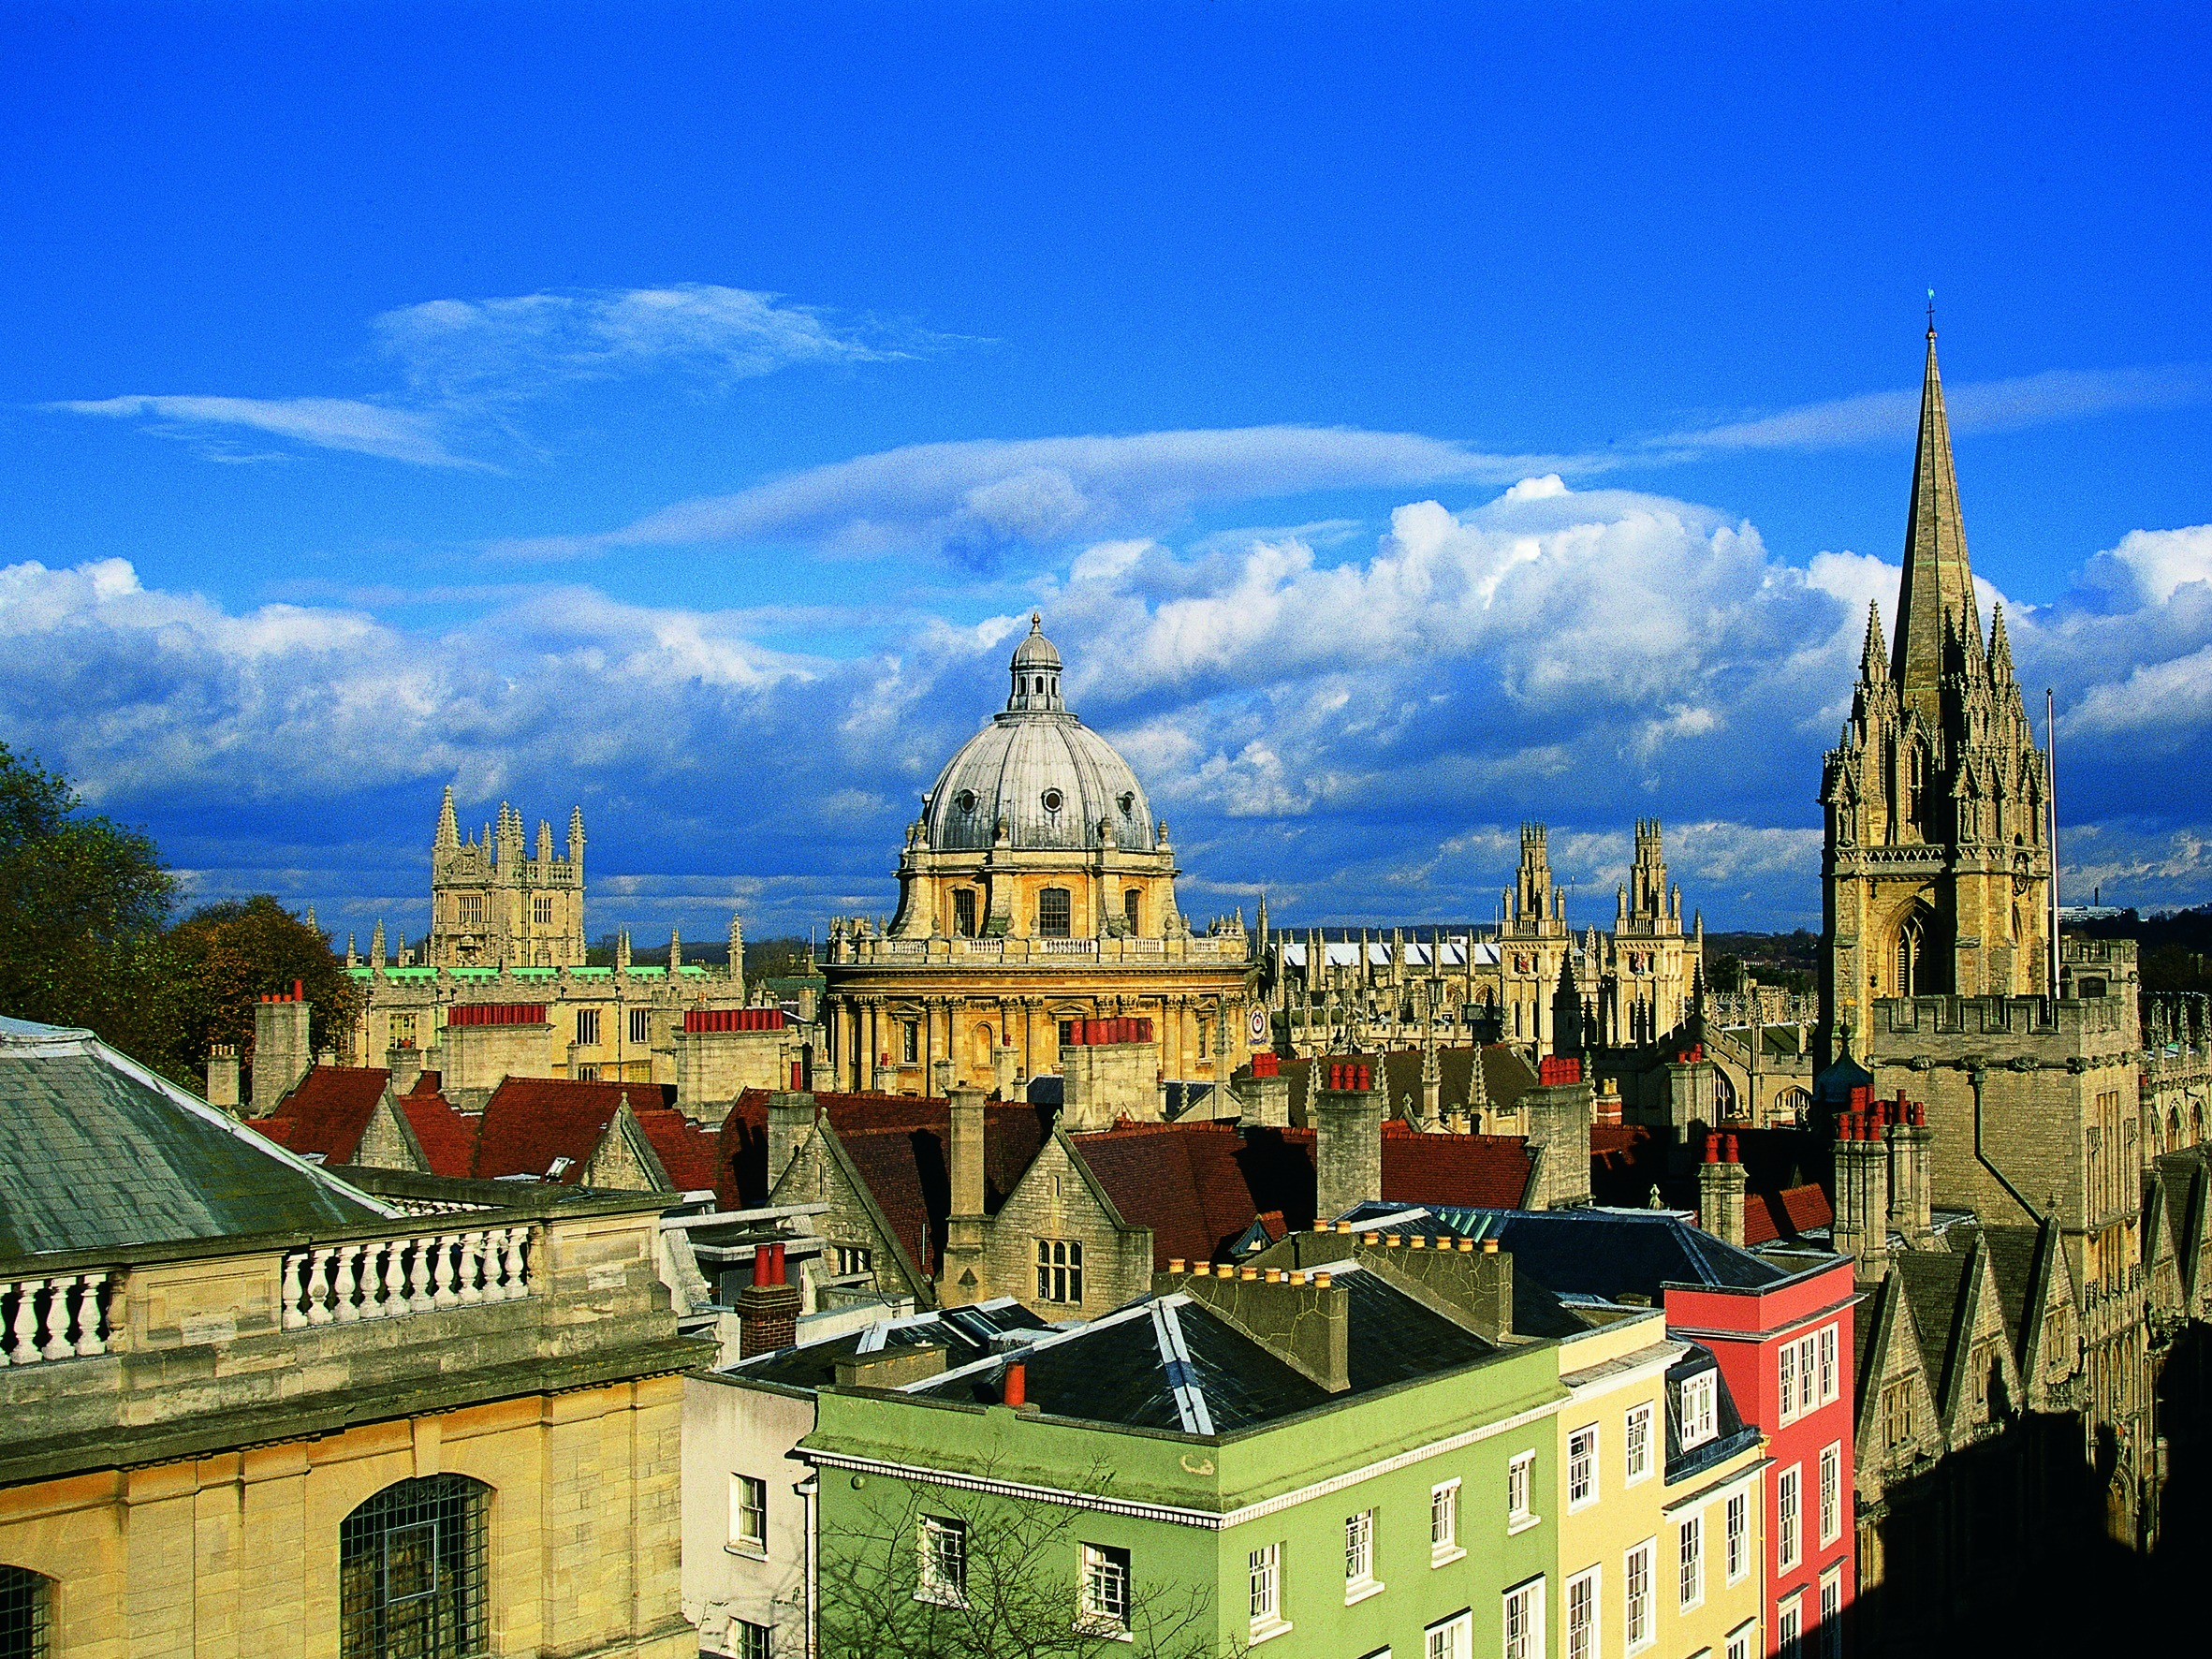 holiday accommodation, oxford accomodation, student accomodation oxford, holiday lets, student apartments oxford,oxford short let, oxford serviced apartments, oxford apartments, oxford holiday lettings, oxford holiday rentals